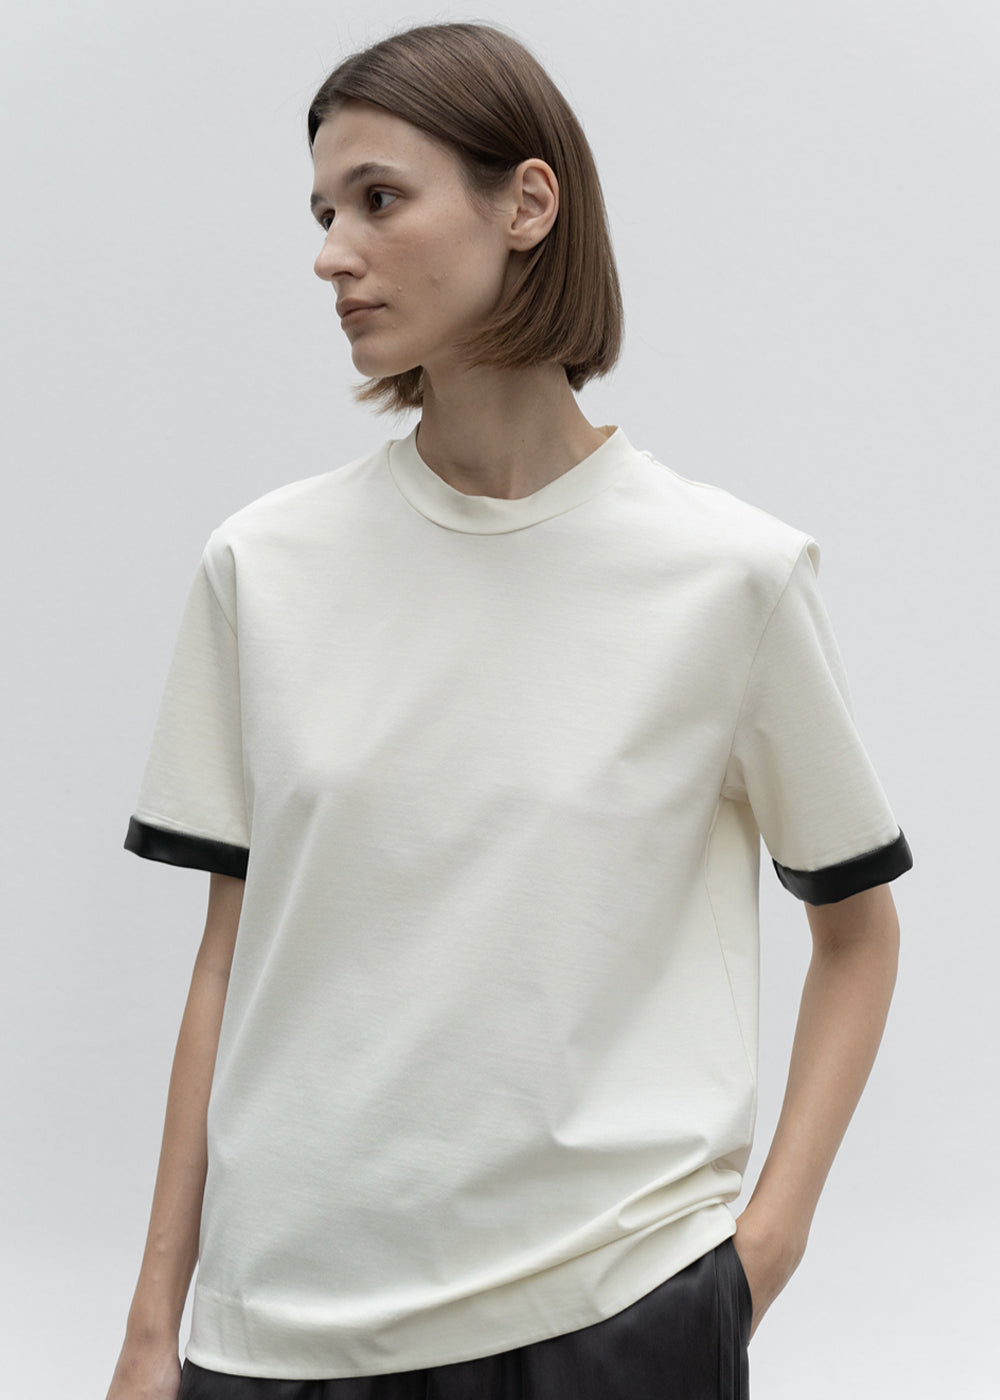 SLEEVE LEATHER COMBI JERSEY TOP CREAM